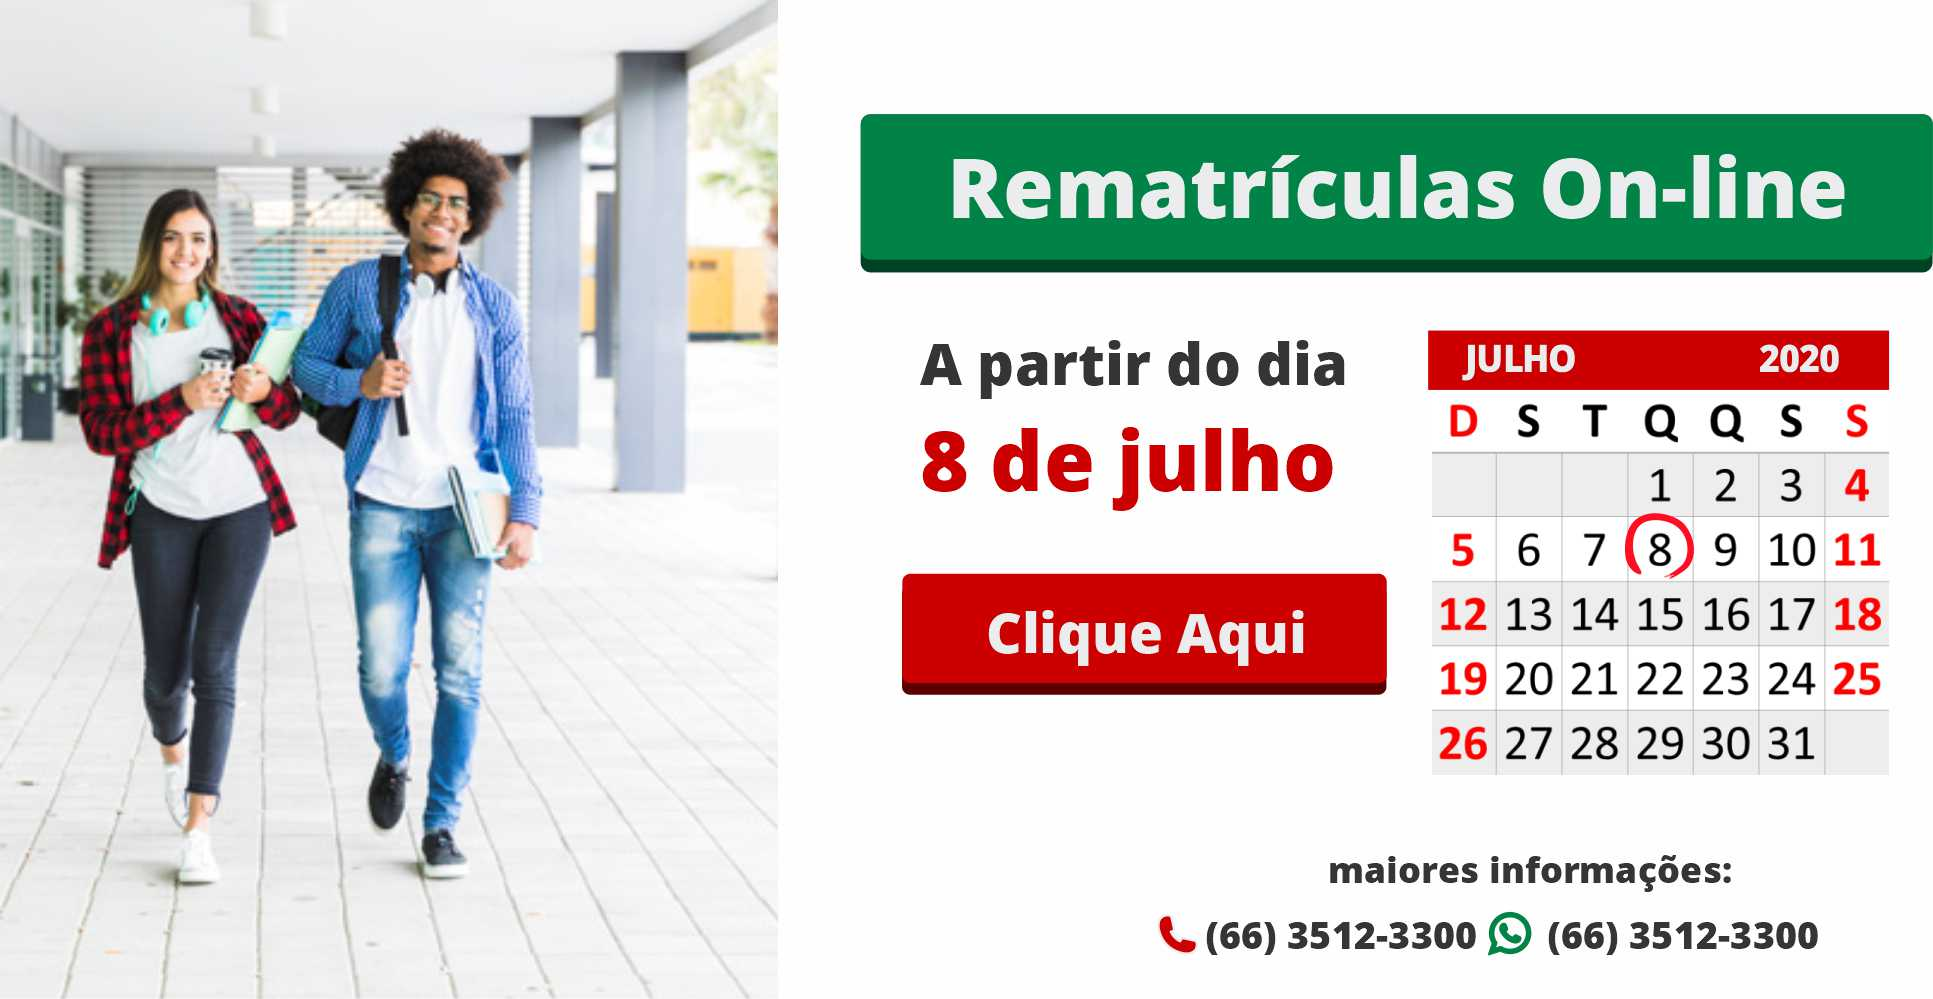 Rematrícula On-line